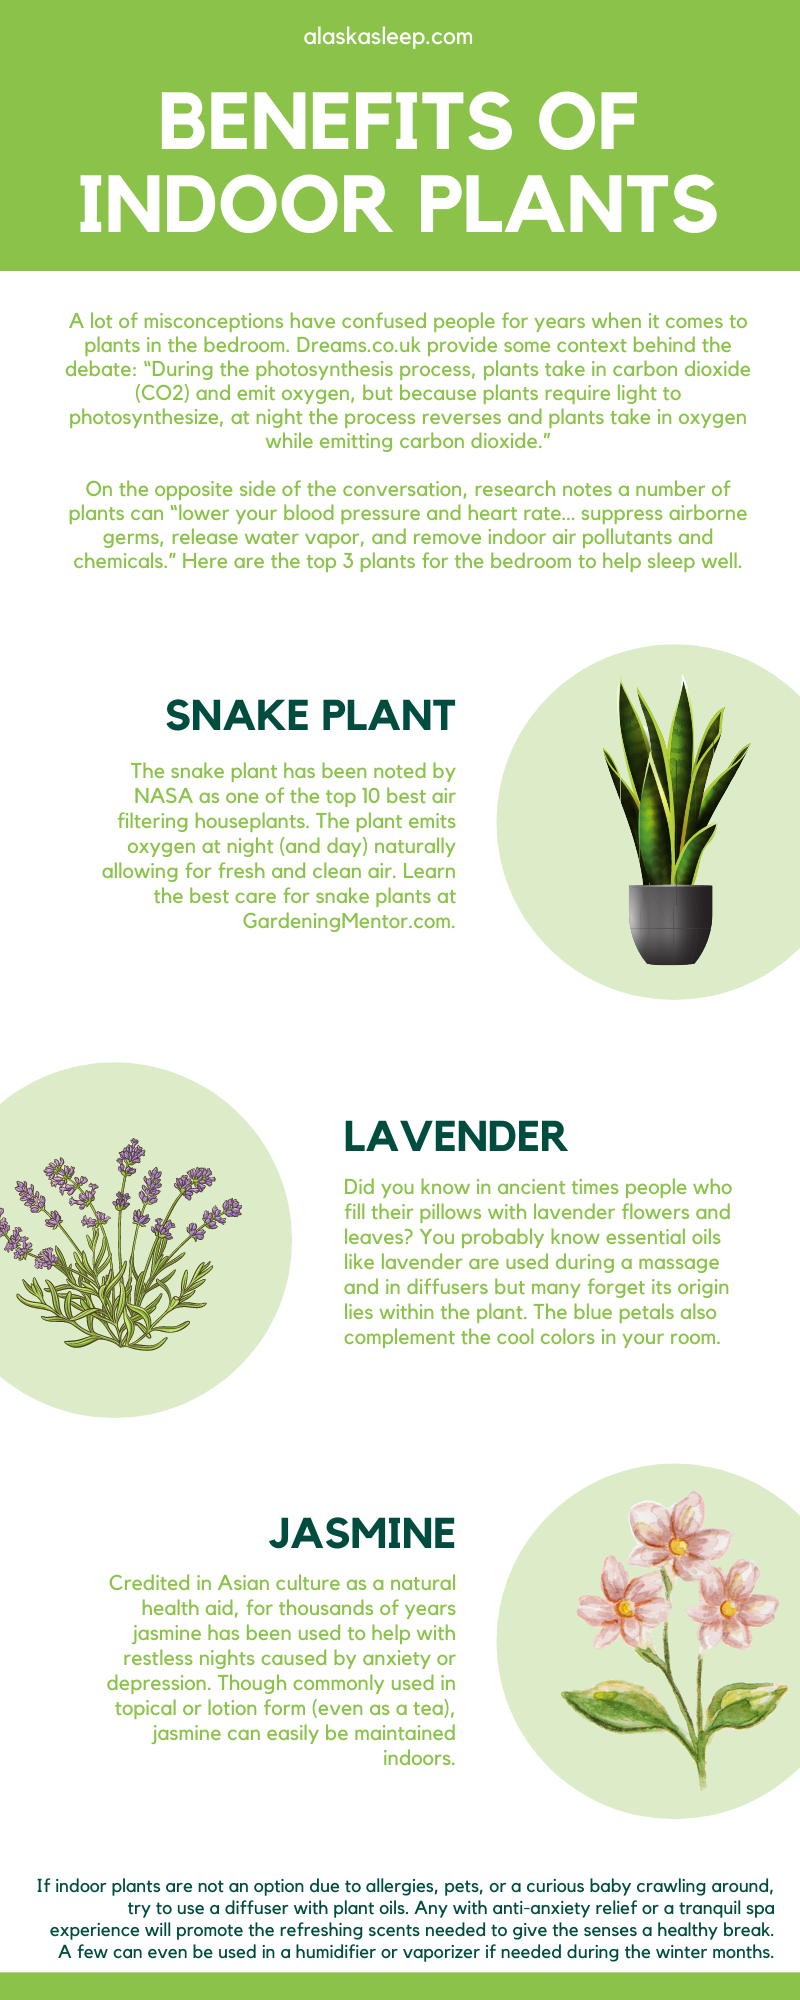 InddorPlants Infographic